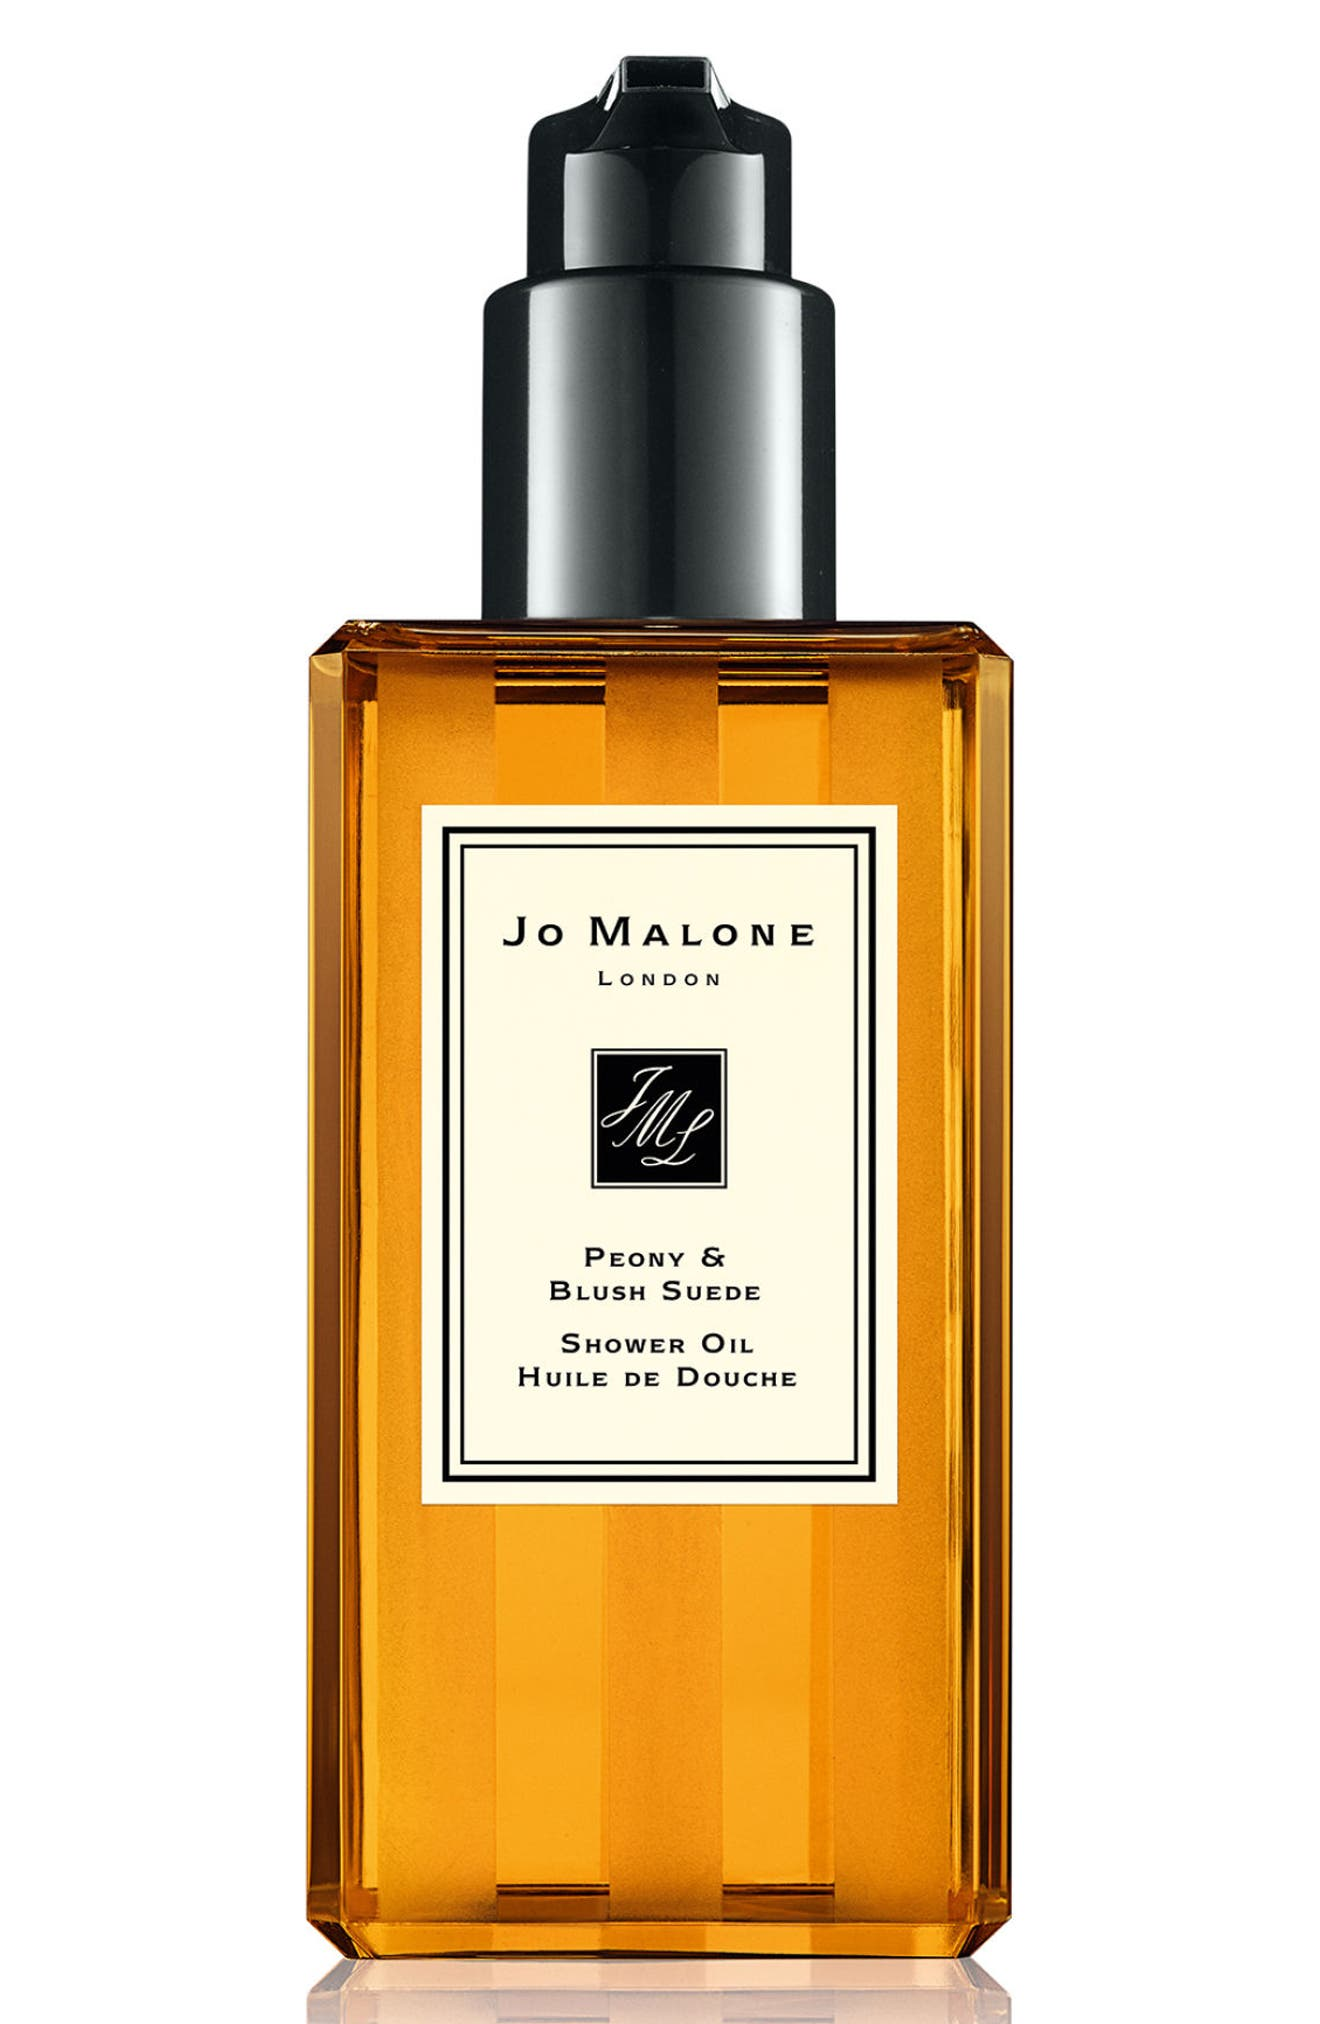 Jo Malone™ 'Peony & Blush Suede' Shower Oil